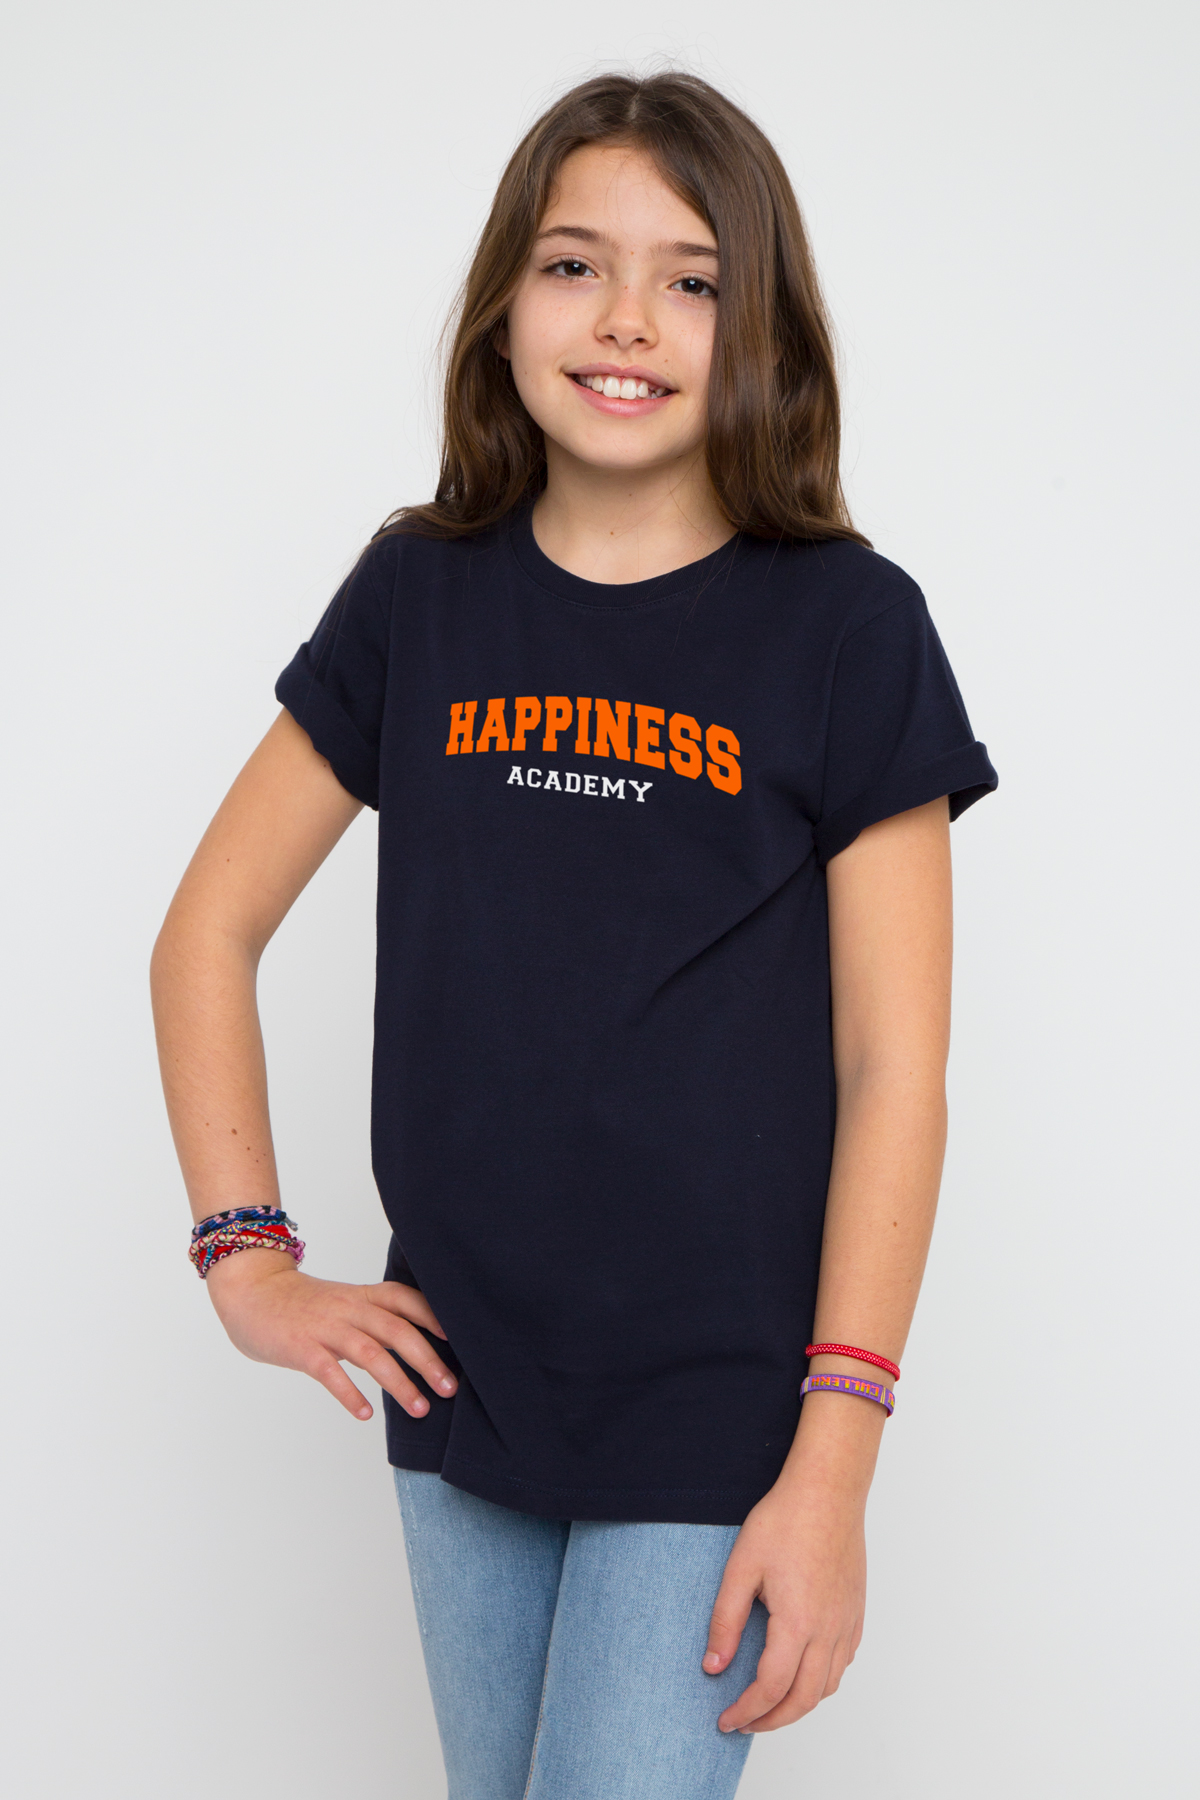 Tshirt HAPPINESS ACADEMY